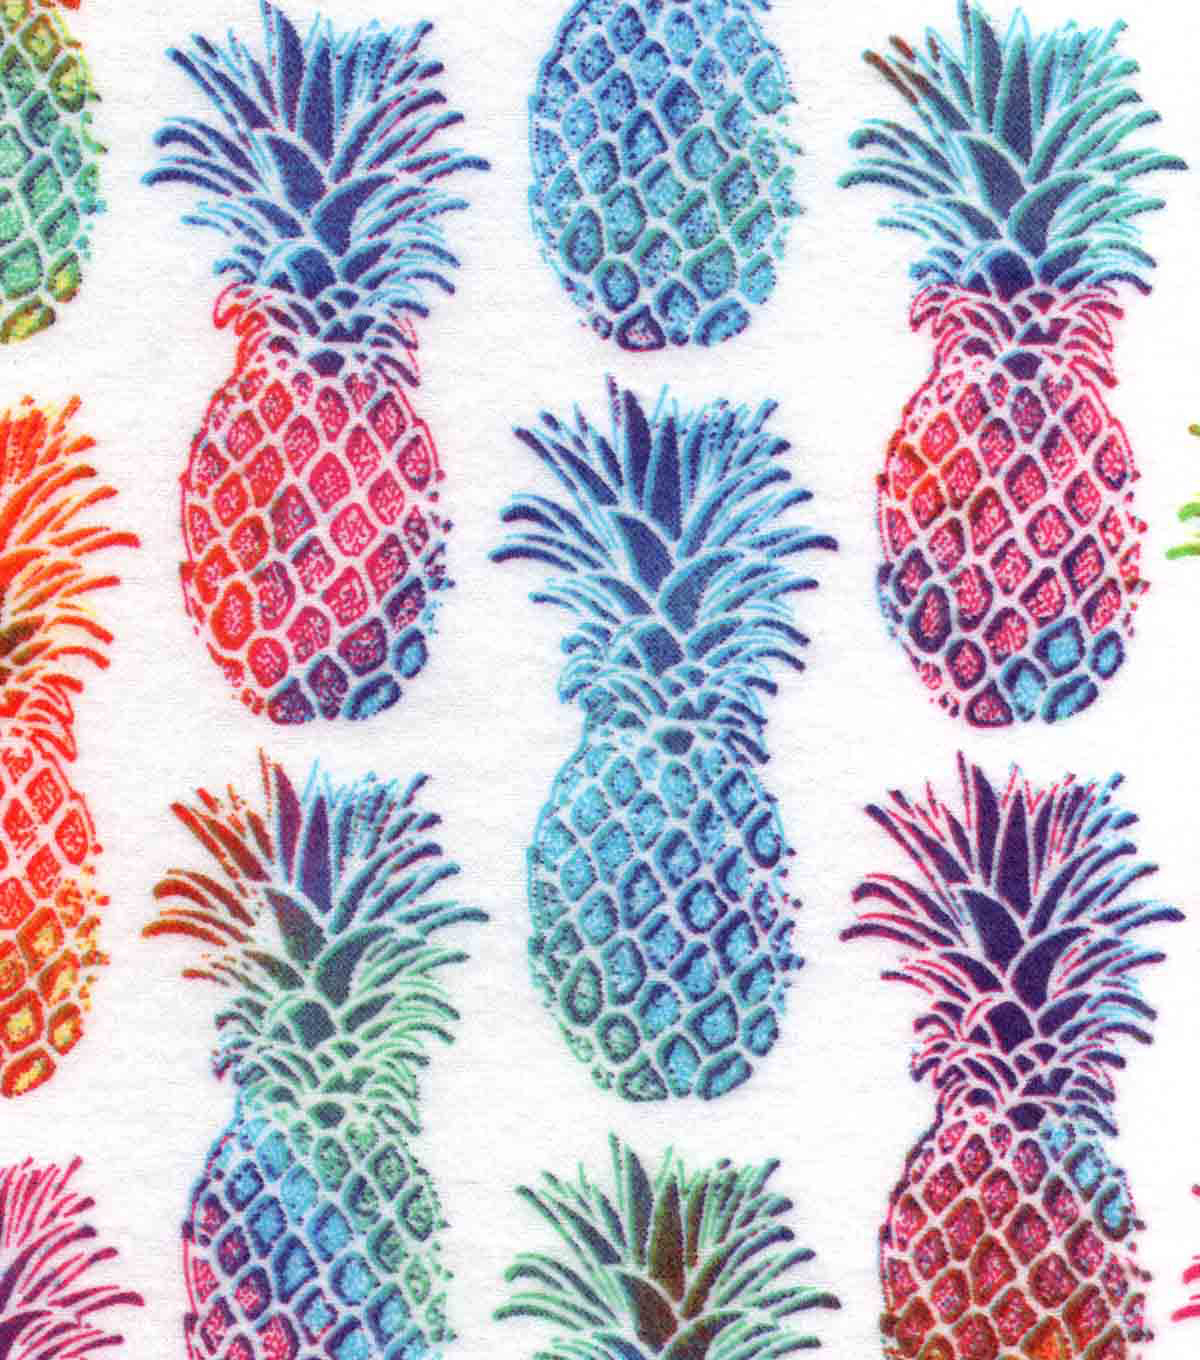 Snuggle Flannel Print Fabric -Bright Pineapple